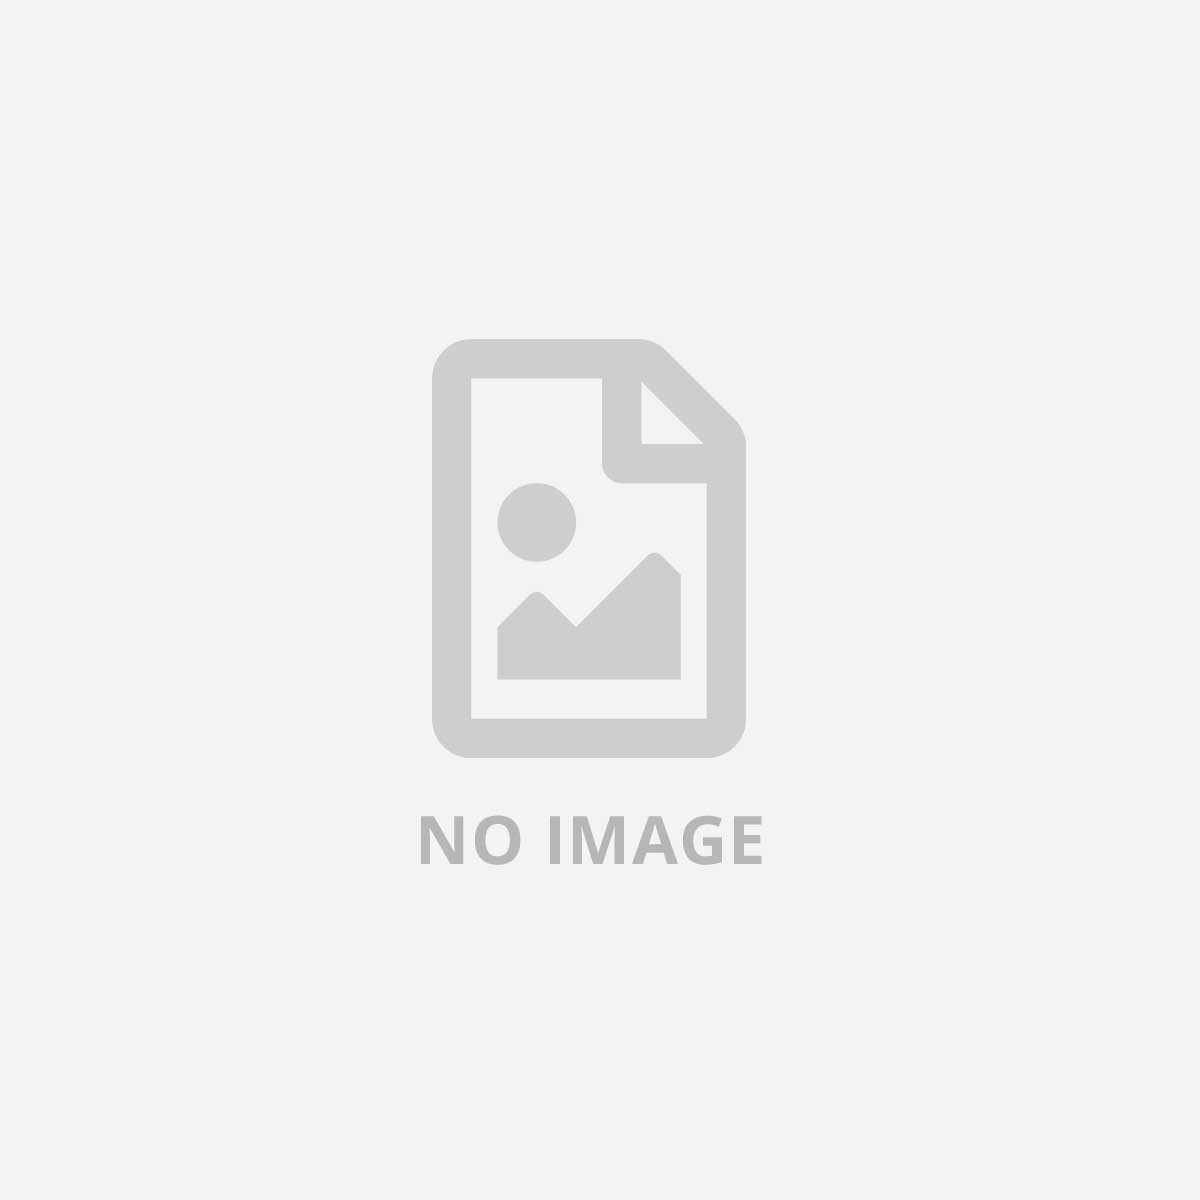 NETGEAR POWERLINE 1000 AV2